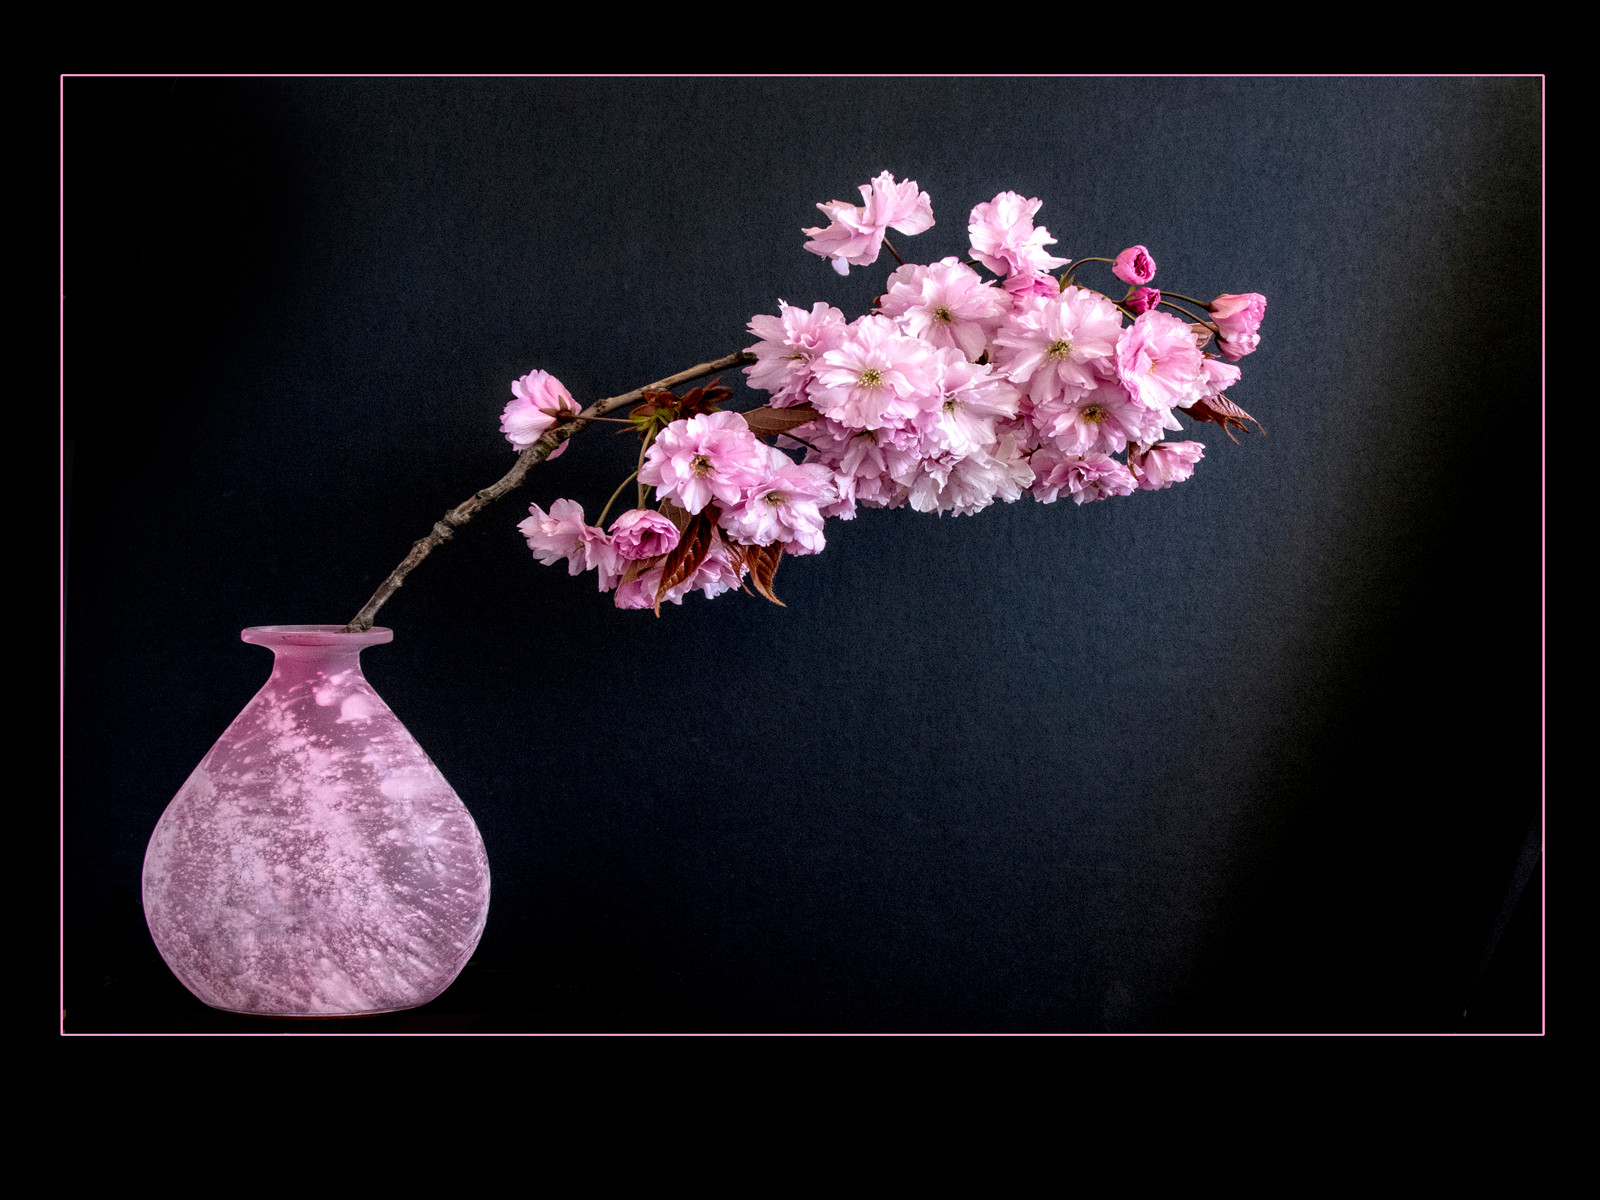 COLOUR - Cherry Blossom by Brian Hennessy (10 marks)